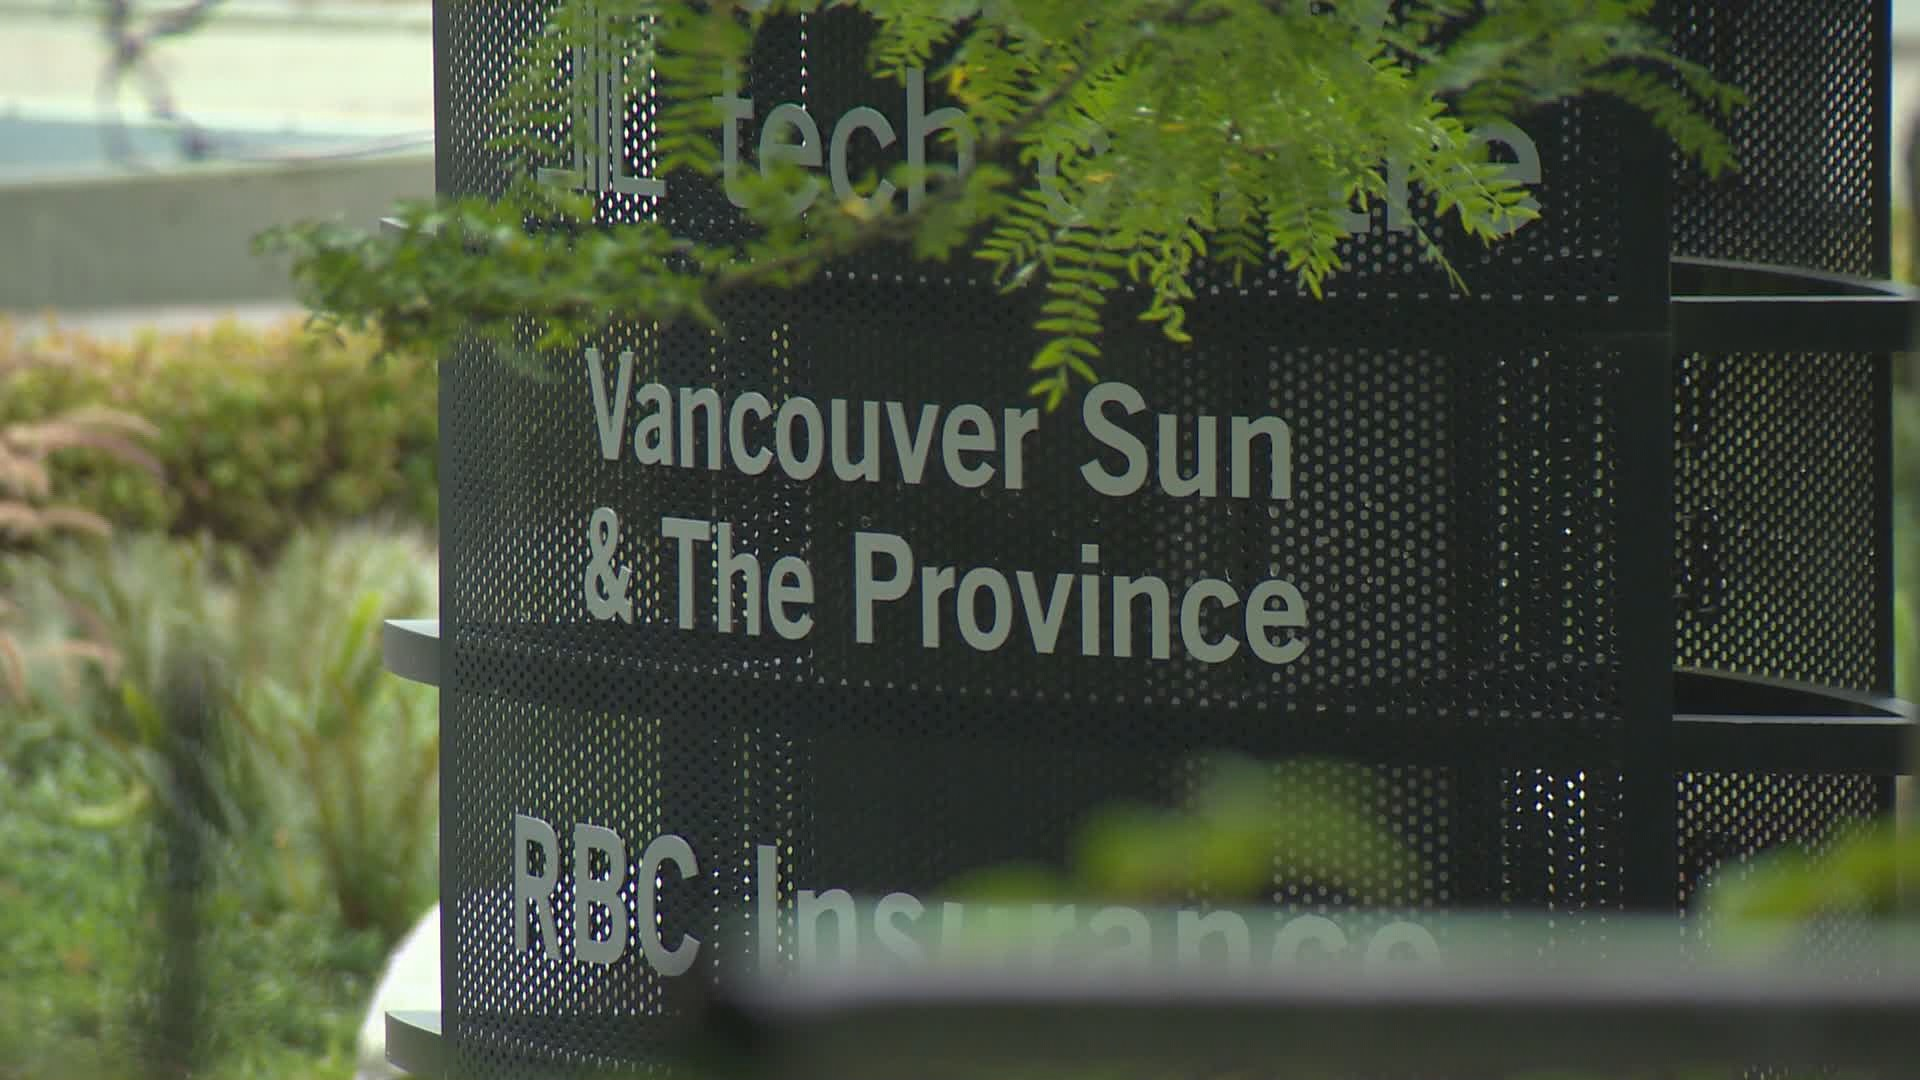 Op-ed outrage at Vancouver Sun